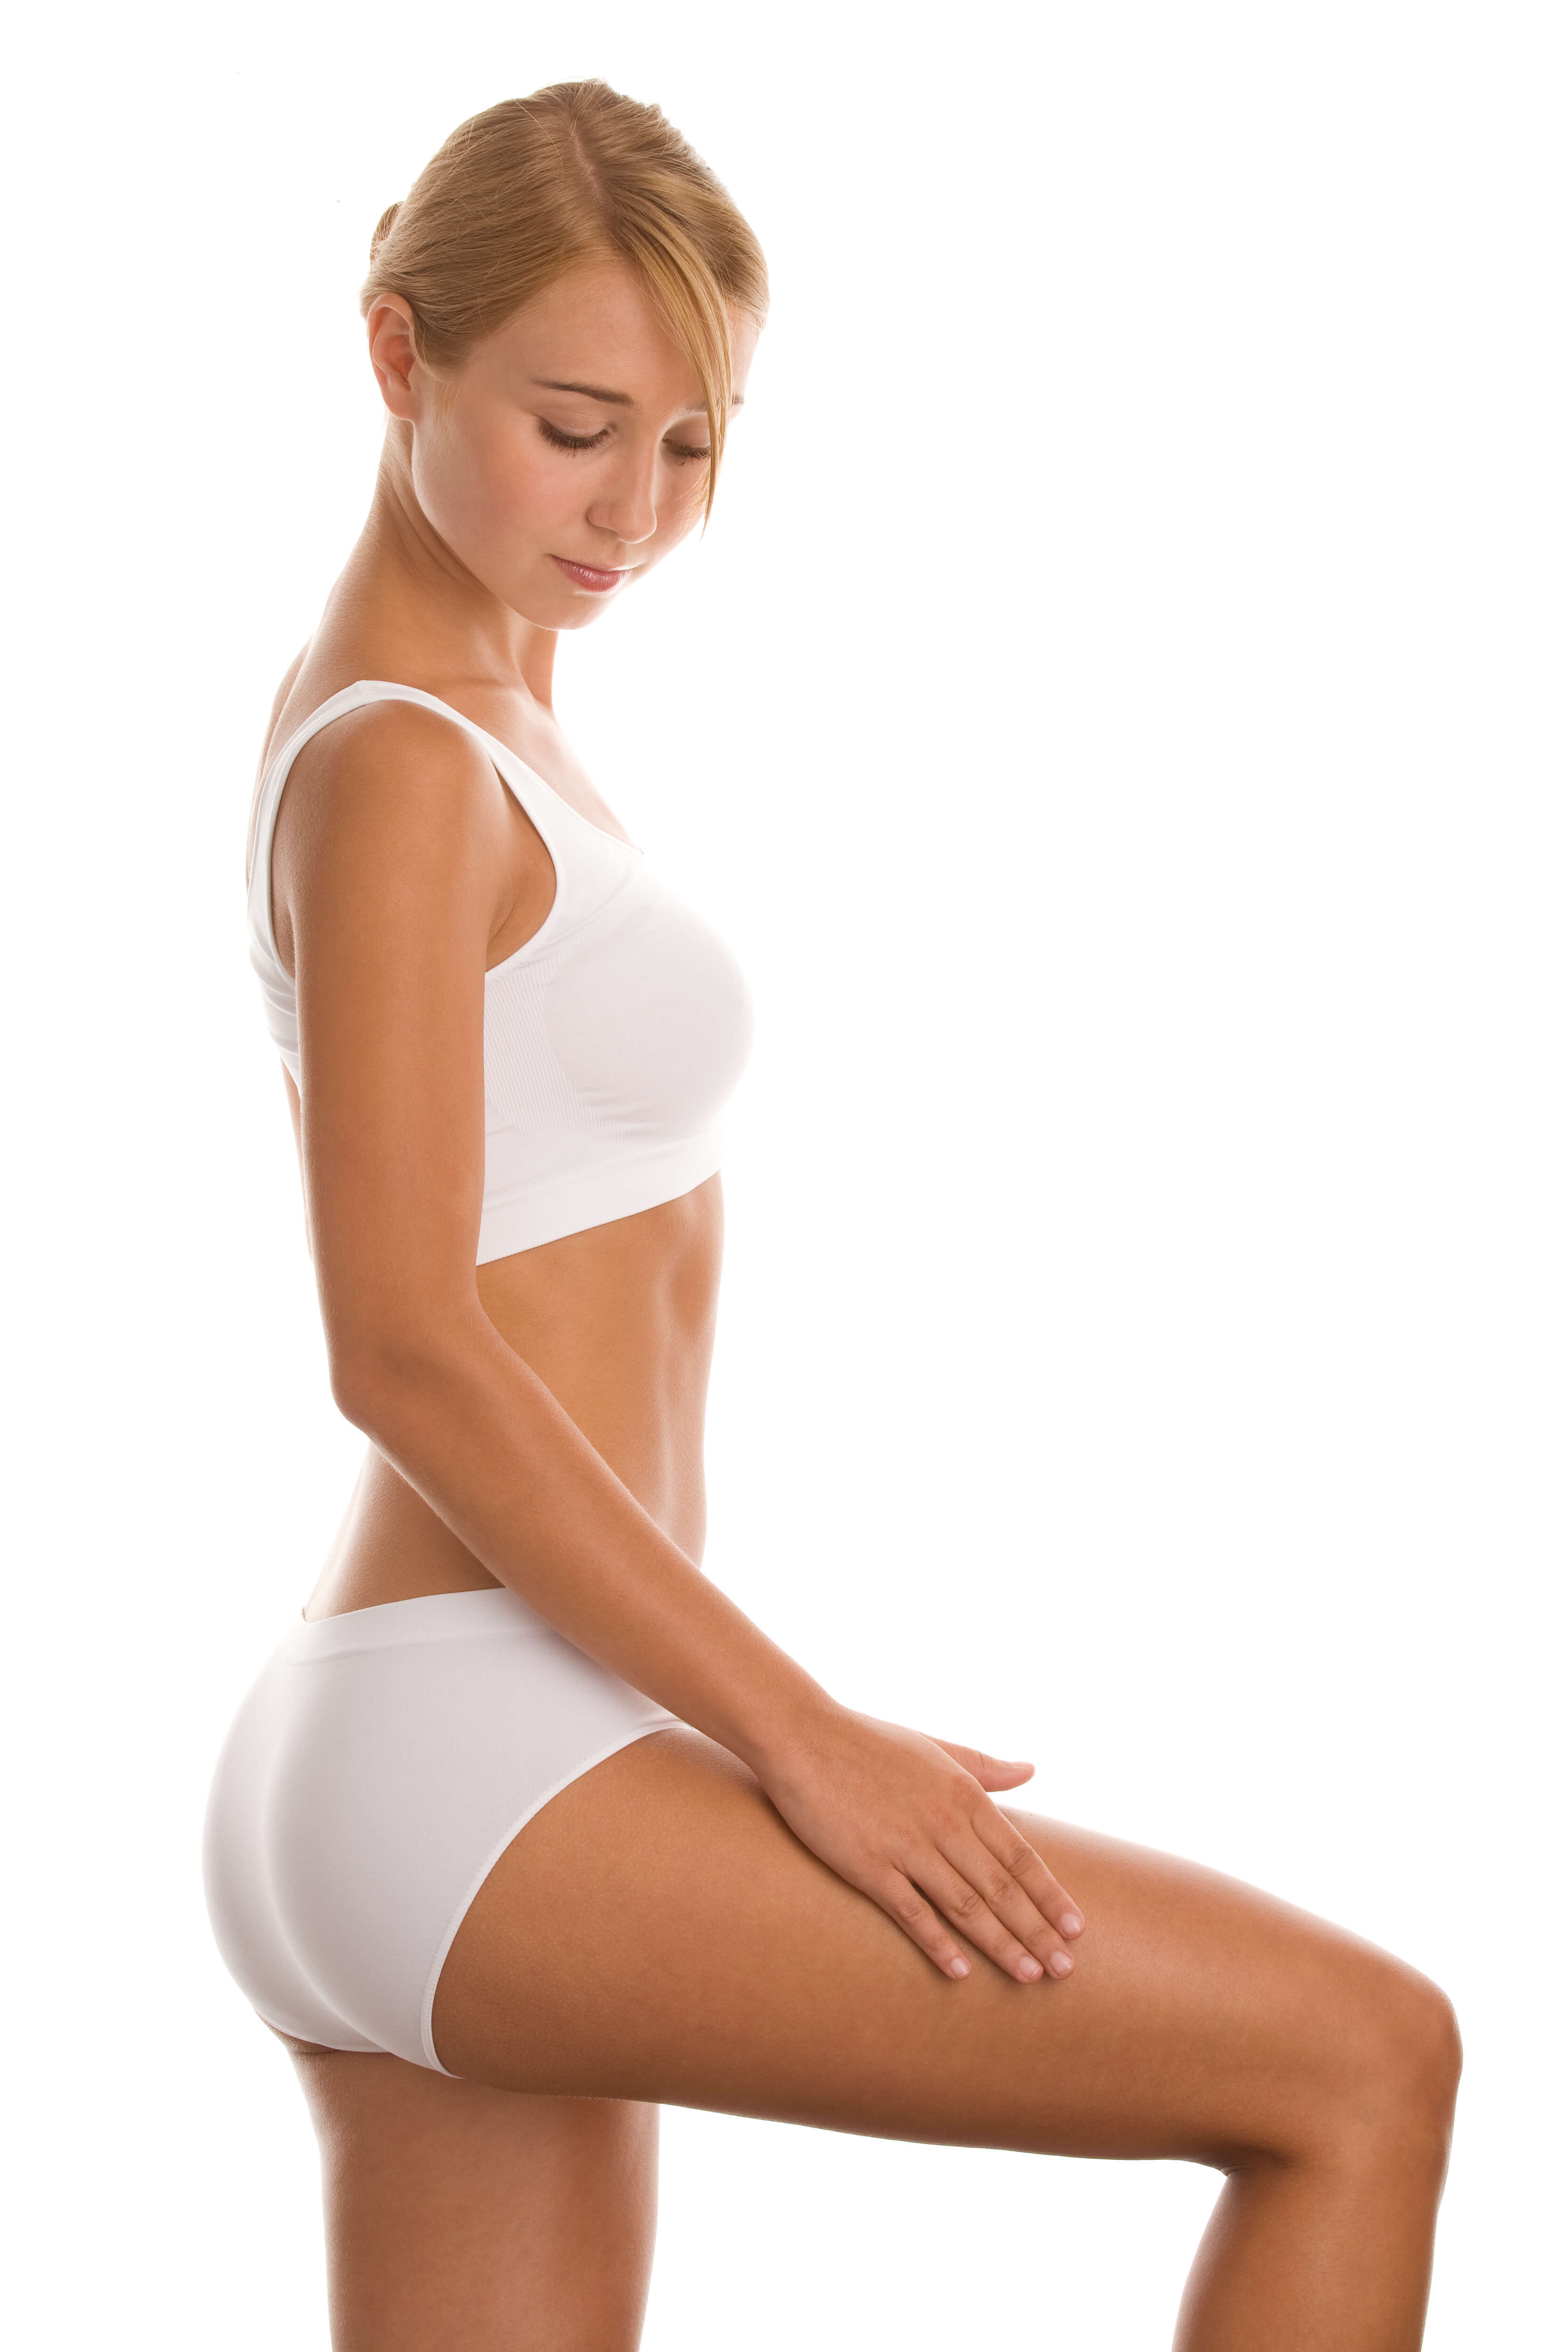 Sistine MediSpa Blog | Your Laser Hair Removal Guide: The DO's and the DON'TS